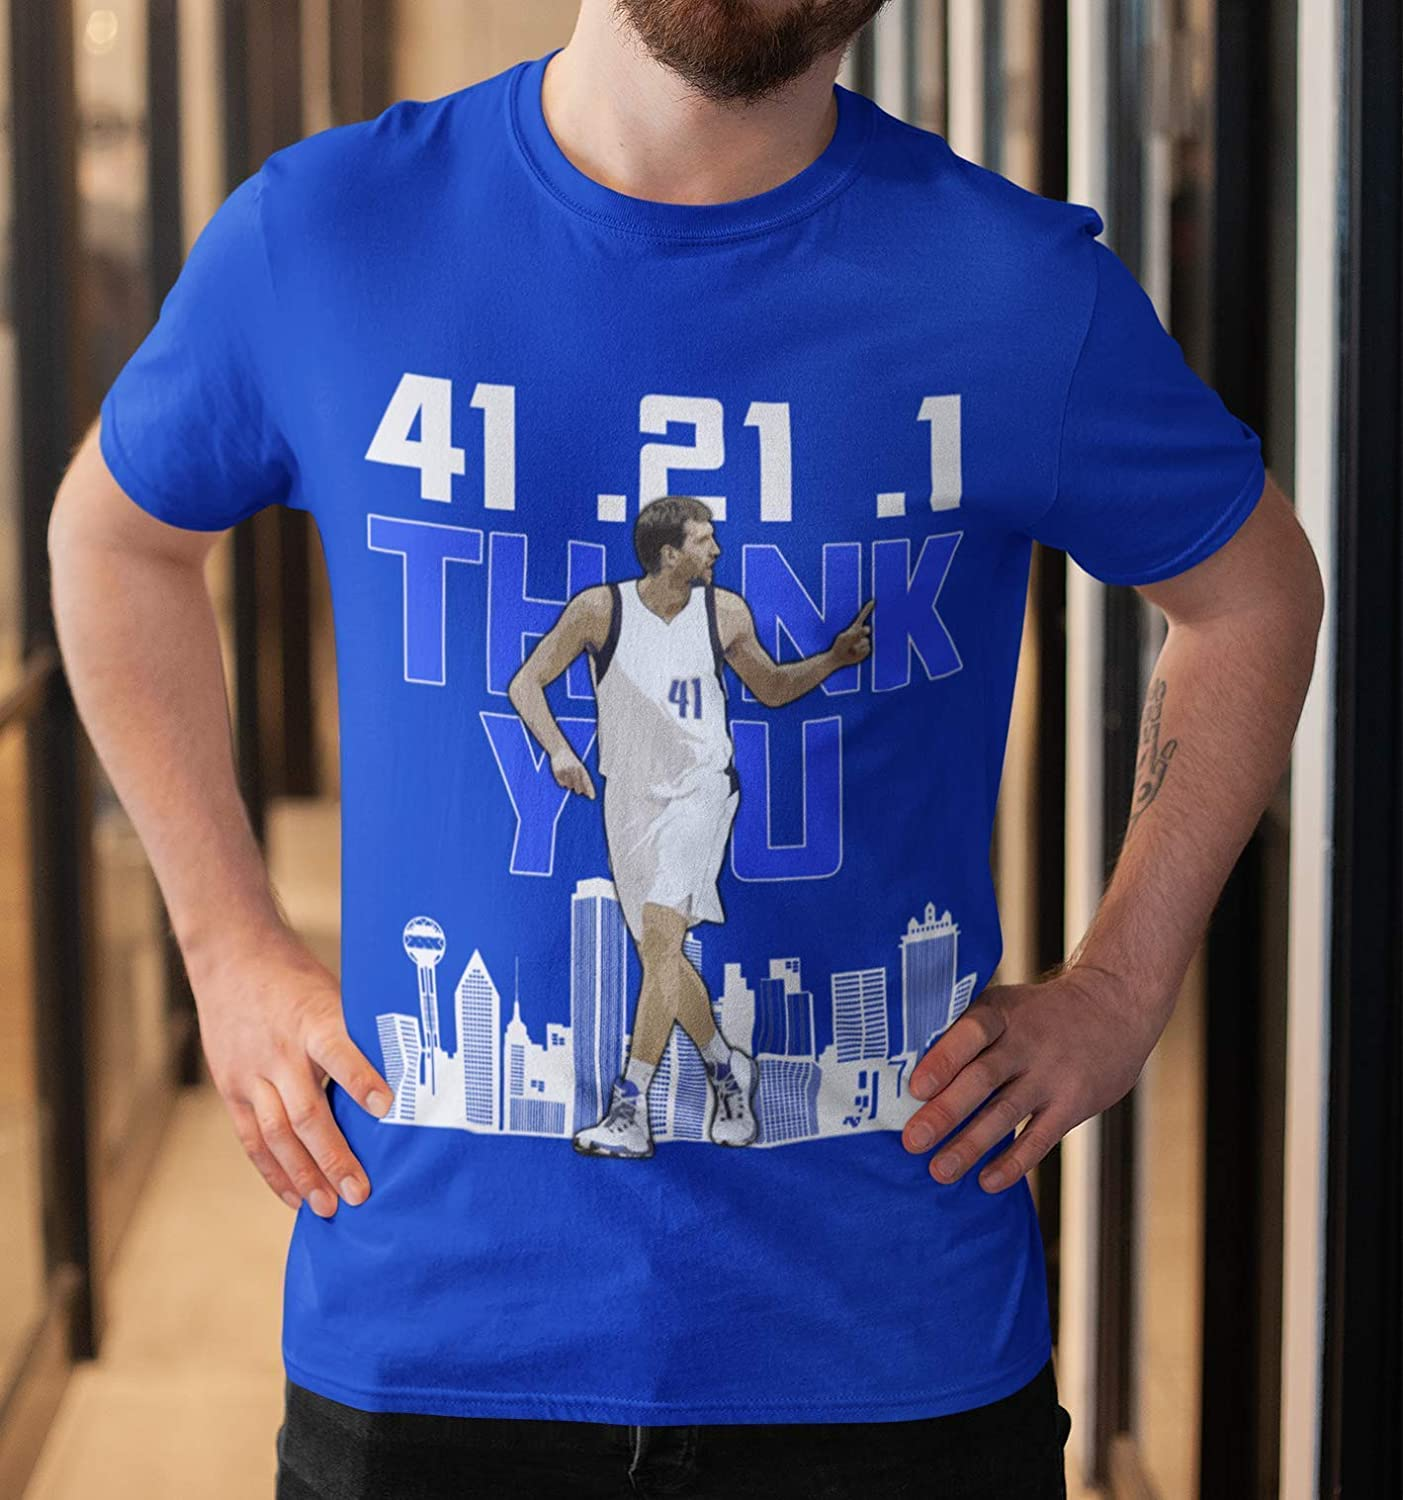 new product f2ee5 daa82 Amazon.com: Dirk-Nowitzki Basketball Jersey 41.21.1 ...